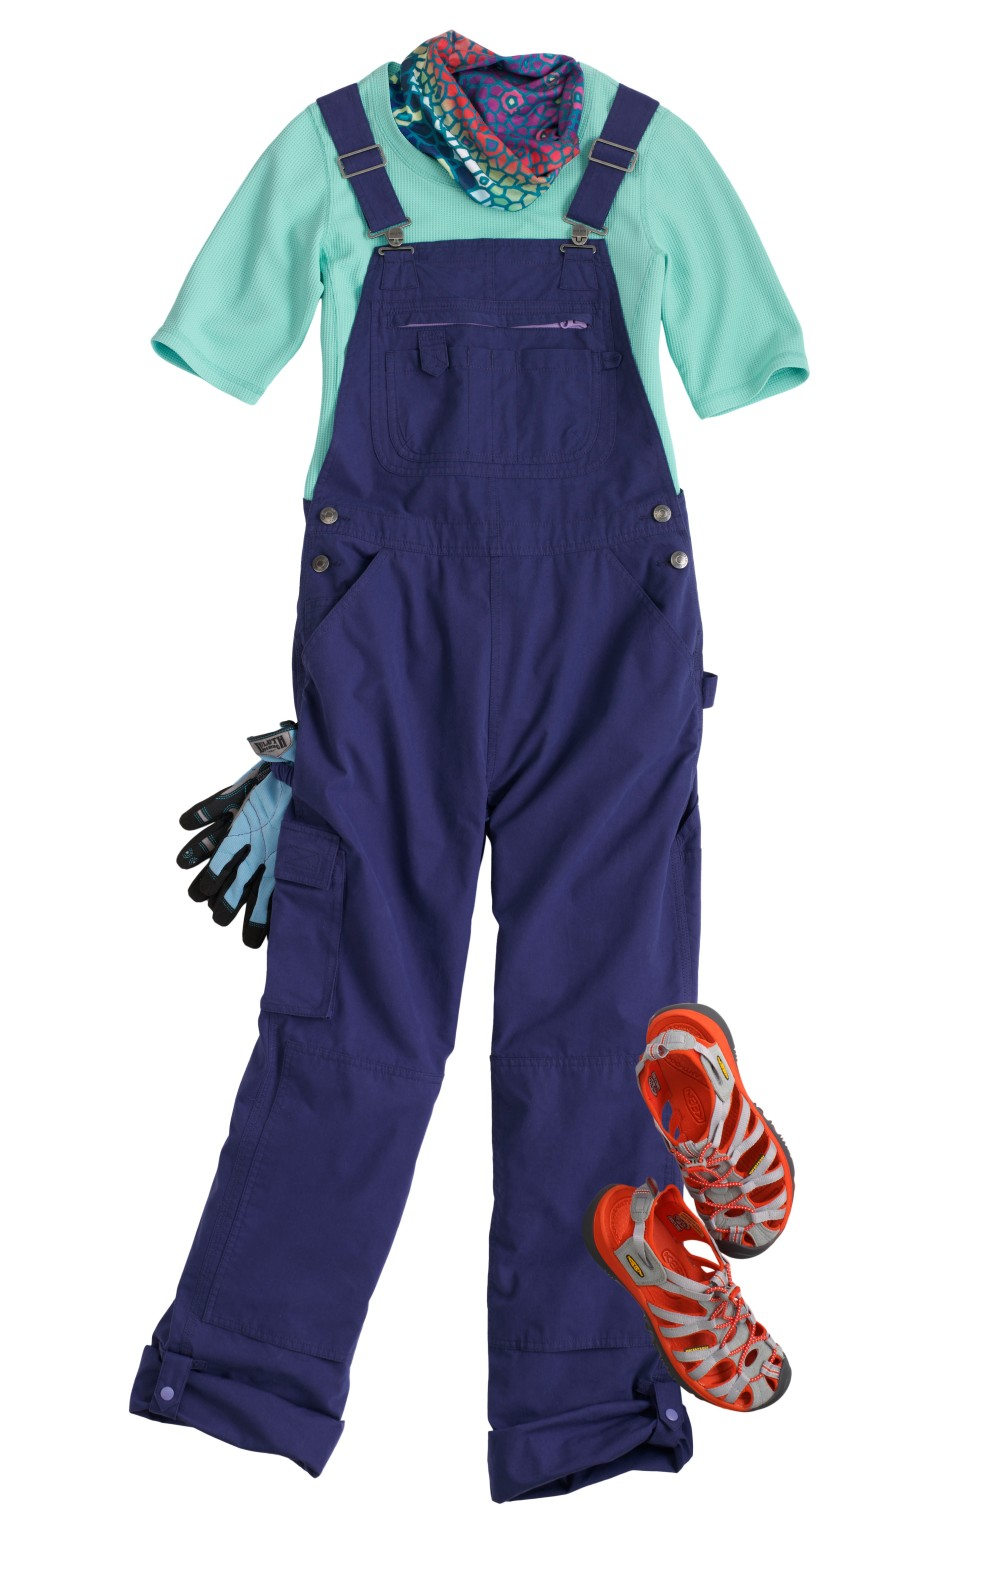 Gardening Clothes: Heirloom Garden Overalls #56955 - No Sweat Waffle Longtail T Shirt #73526